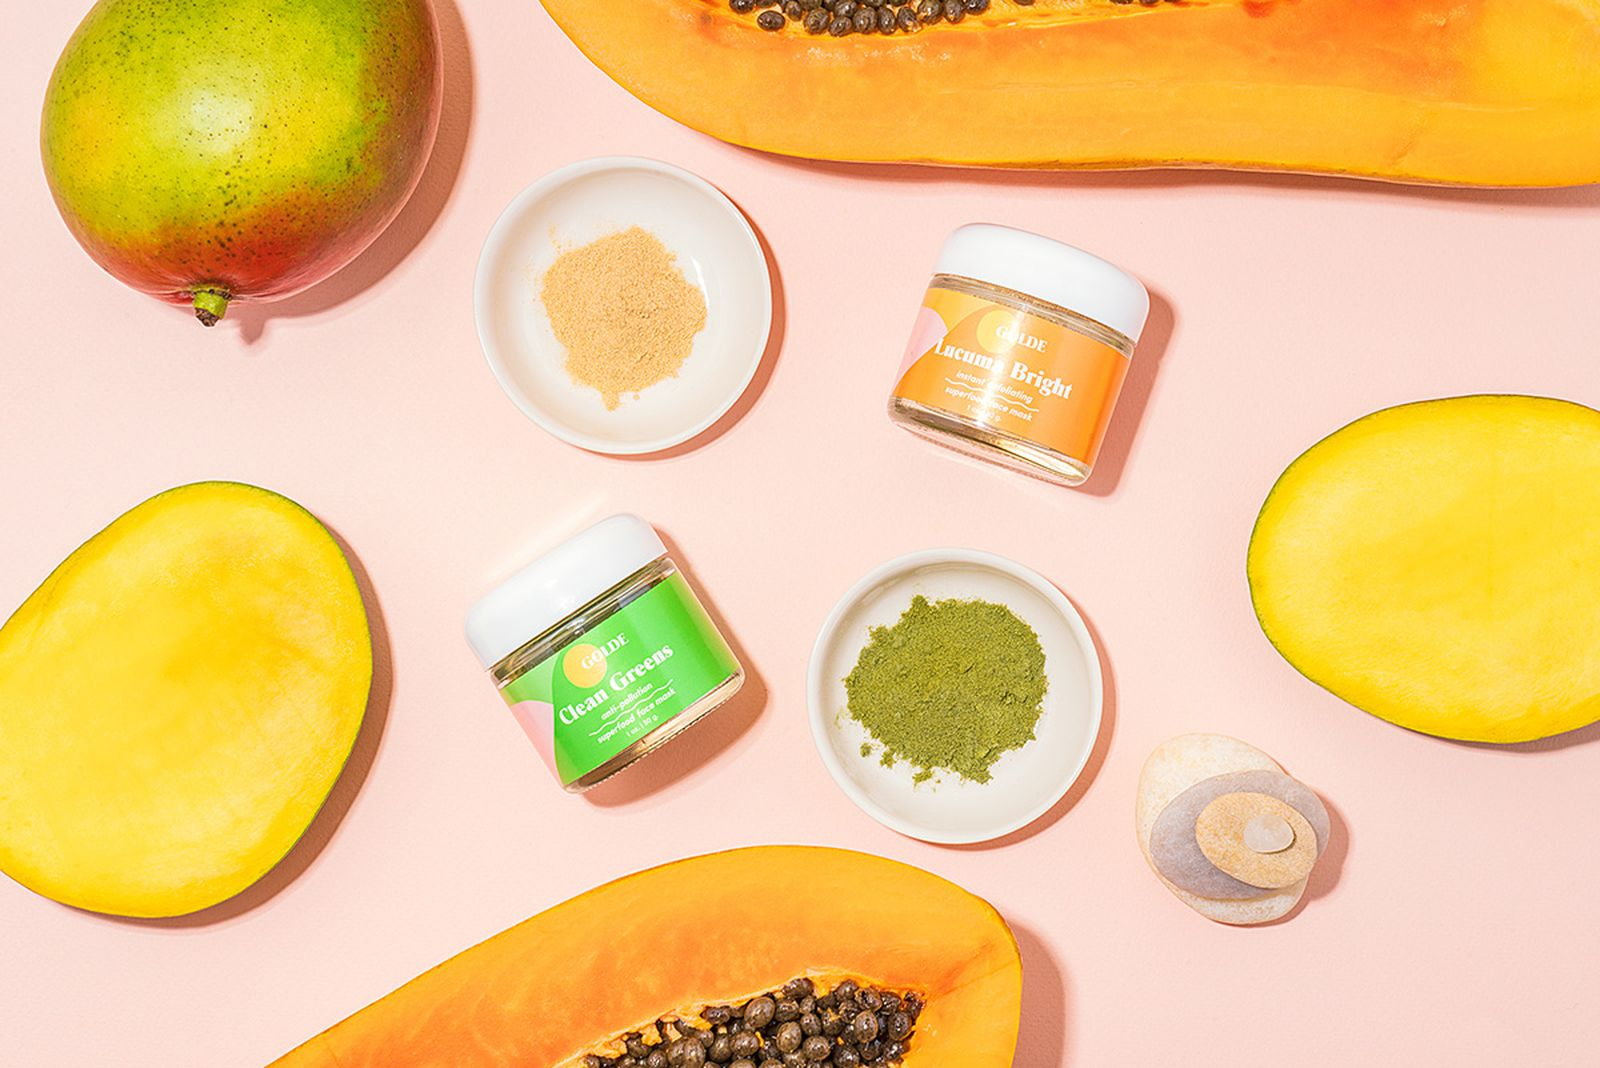 golde wofford interview face mask skincare